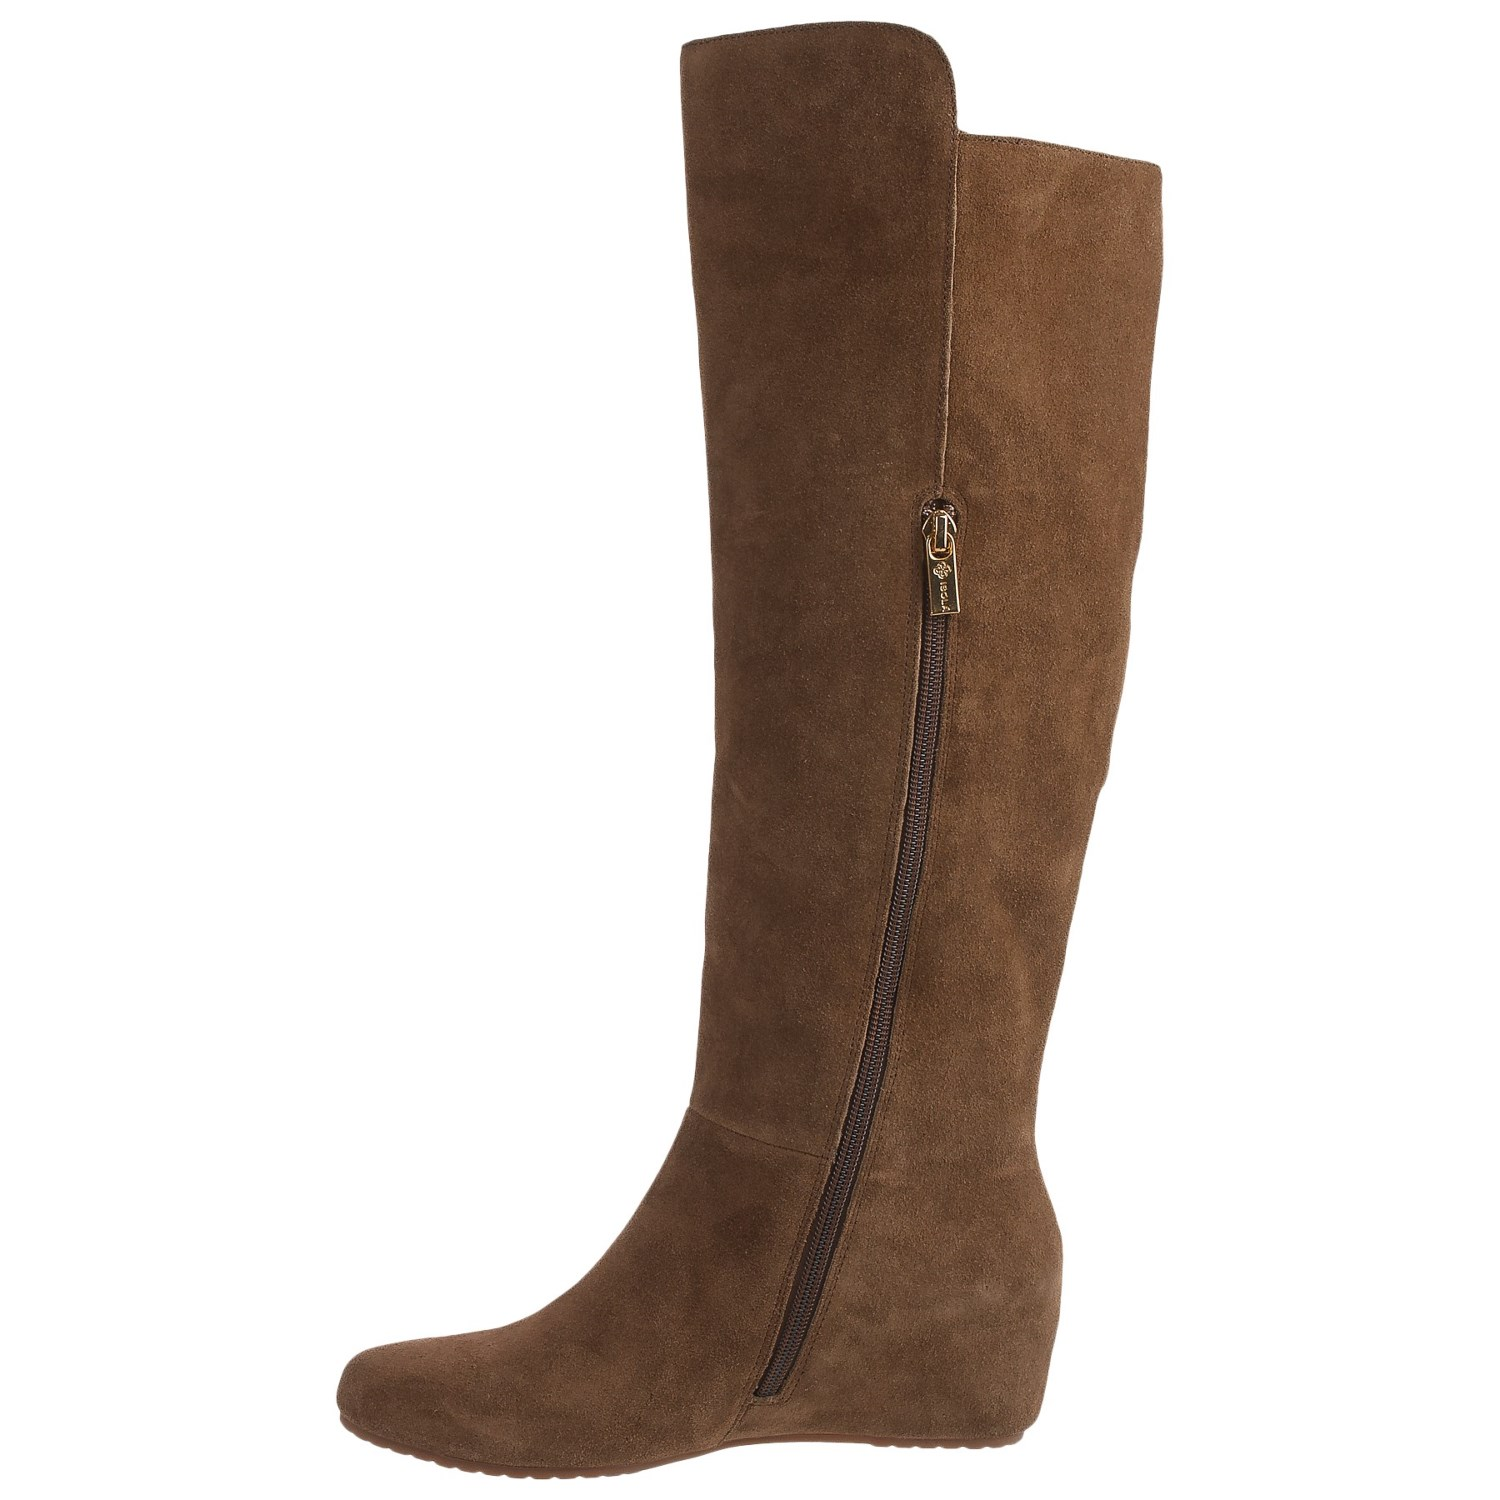 Isola Taveres Tall Dress Boots (For Women) - Save 63%